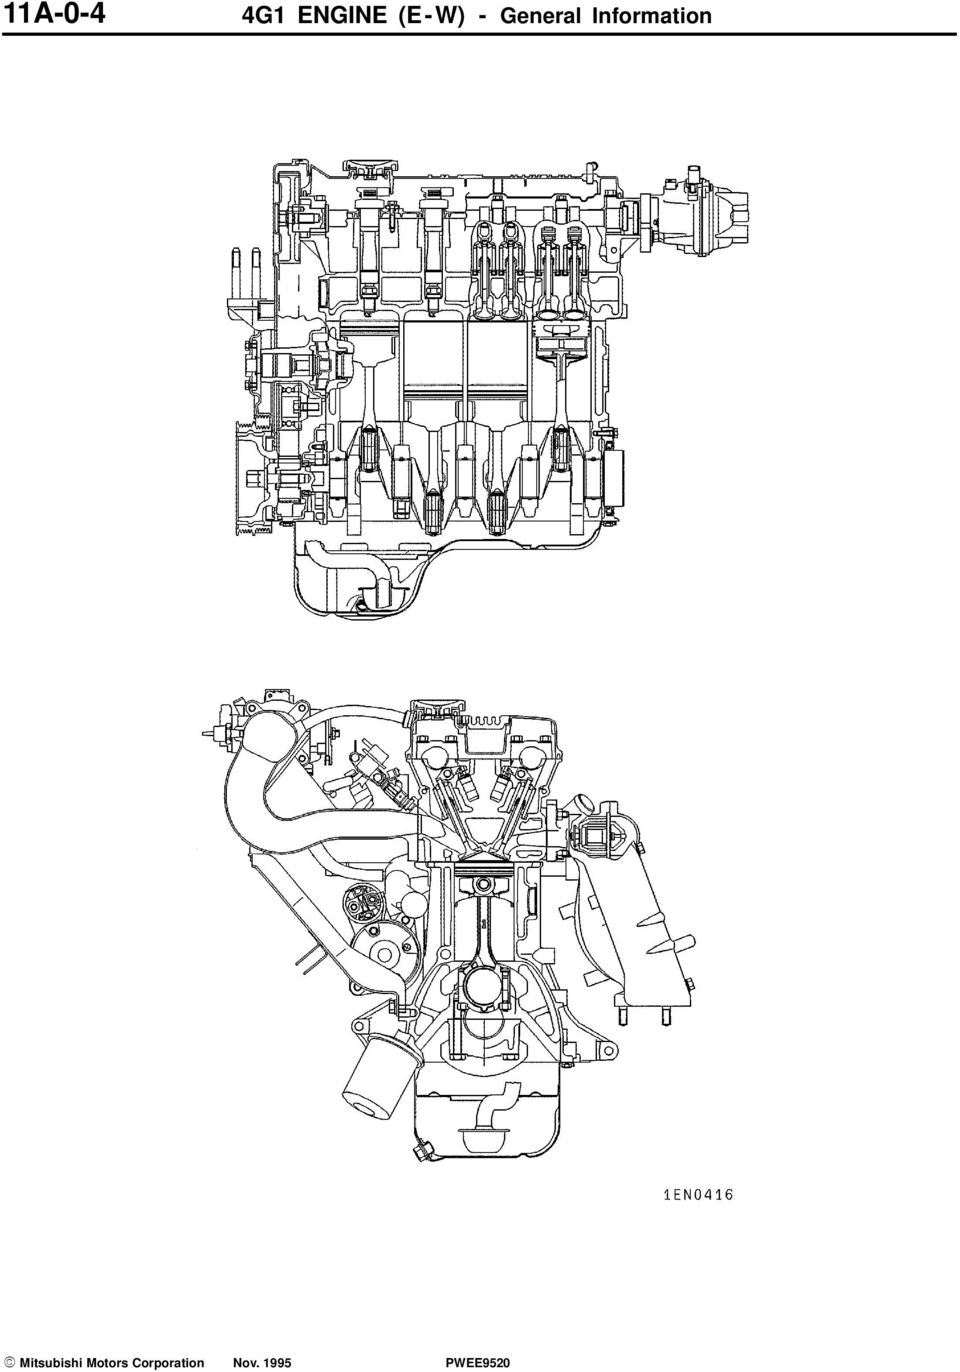 ENGINE 4G1 SERIES CONTENTS GENERAL INFORMATION